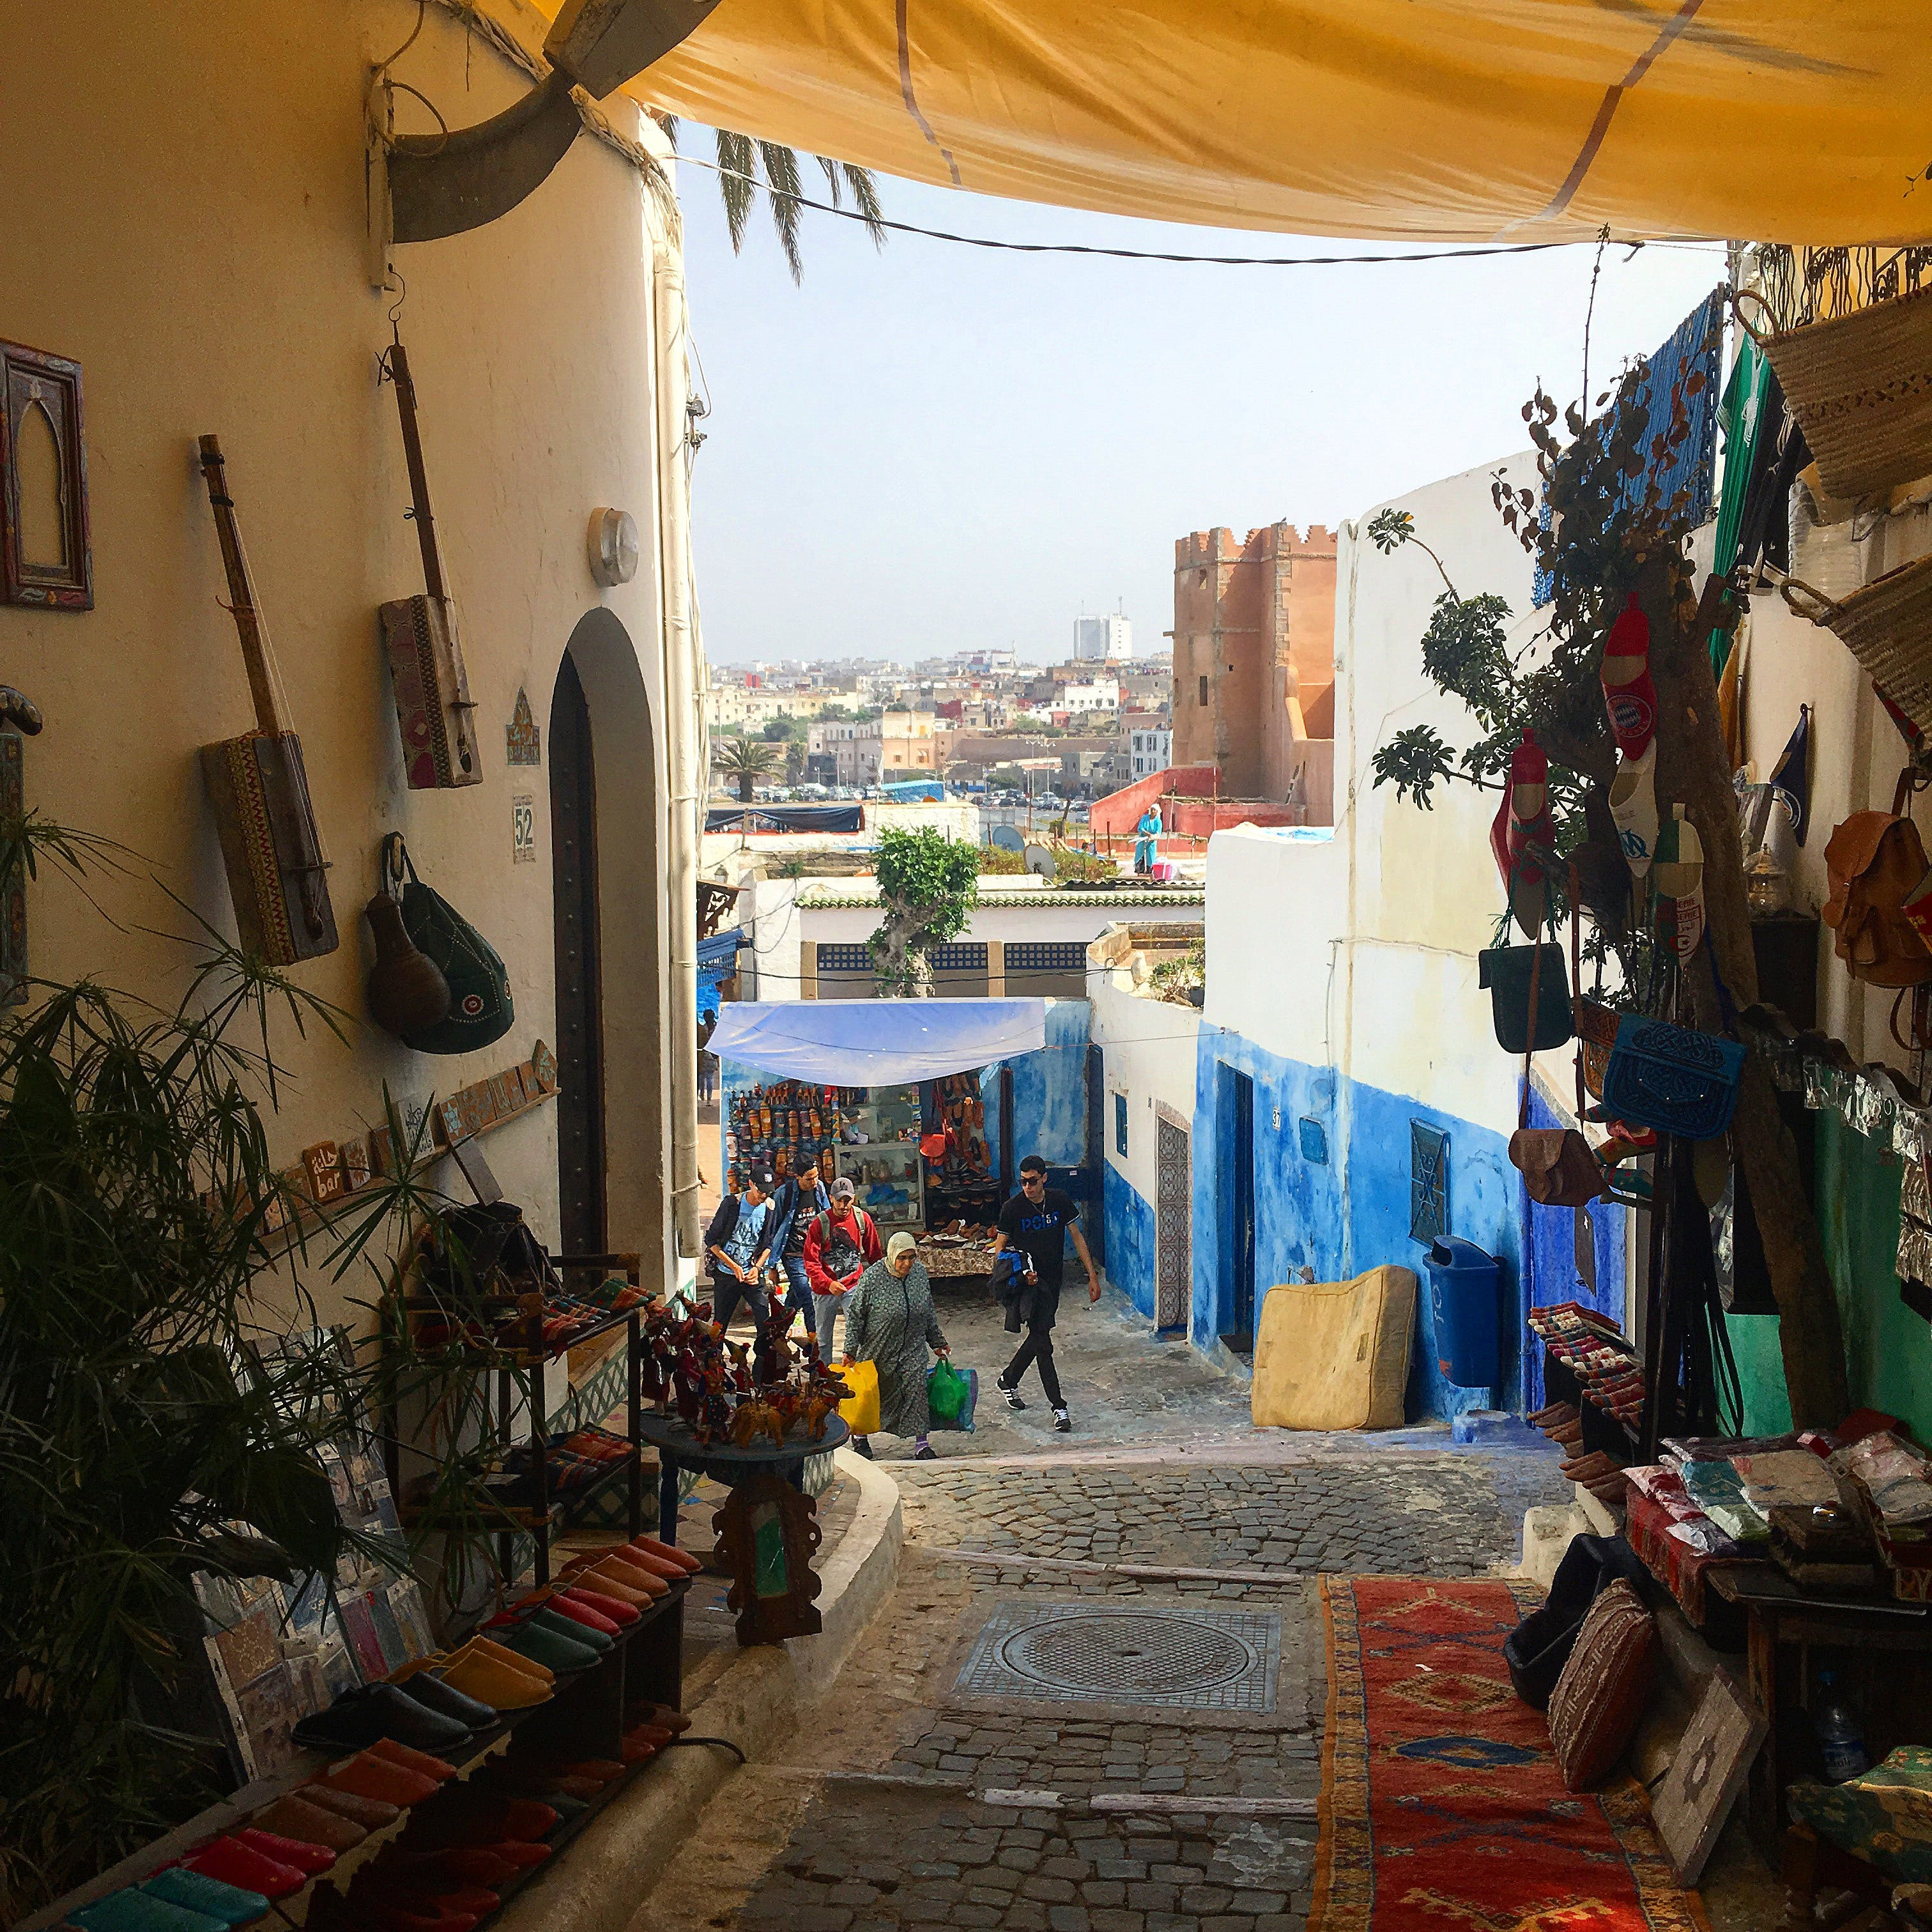 Free stock photo of market, Morroco, souq